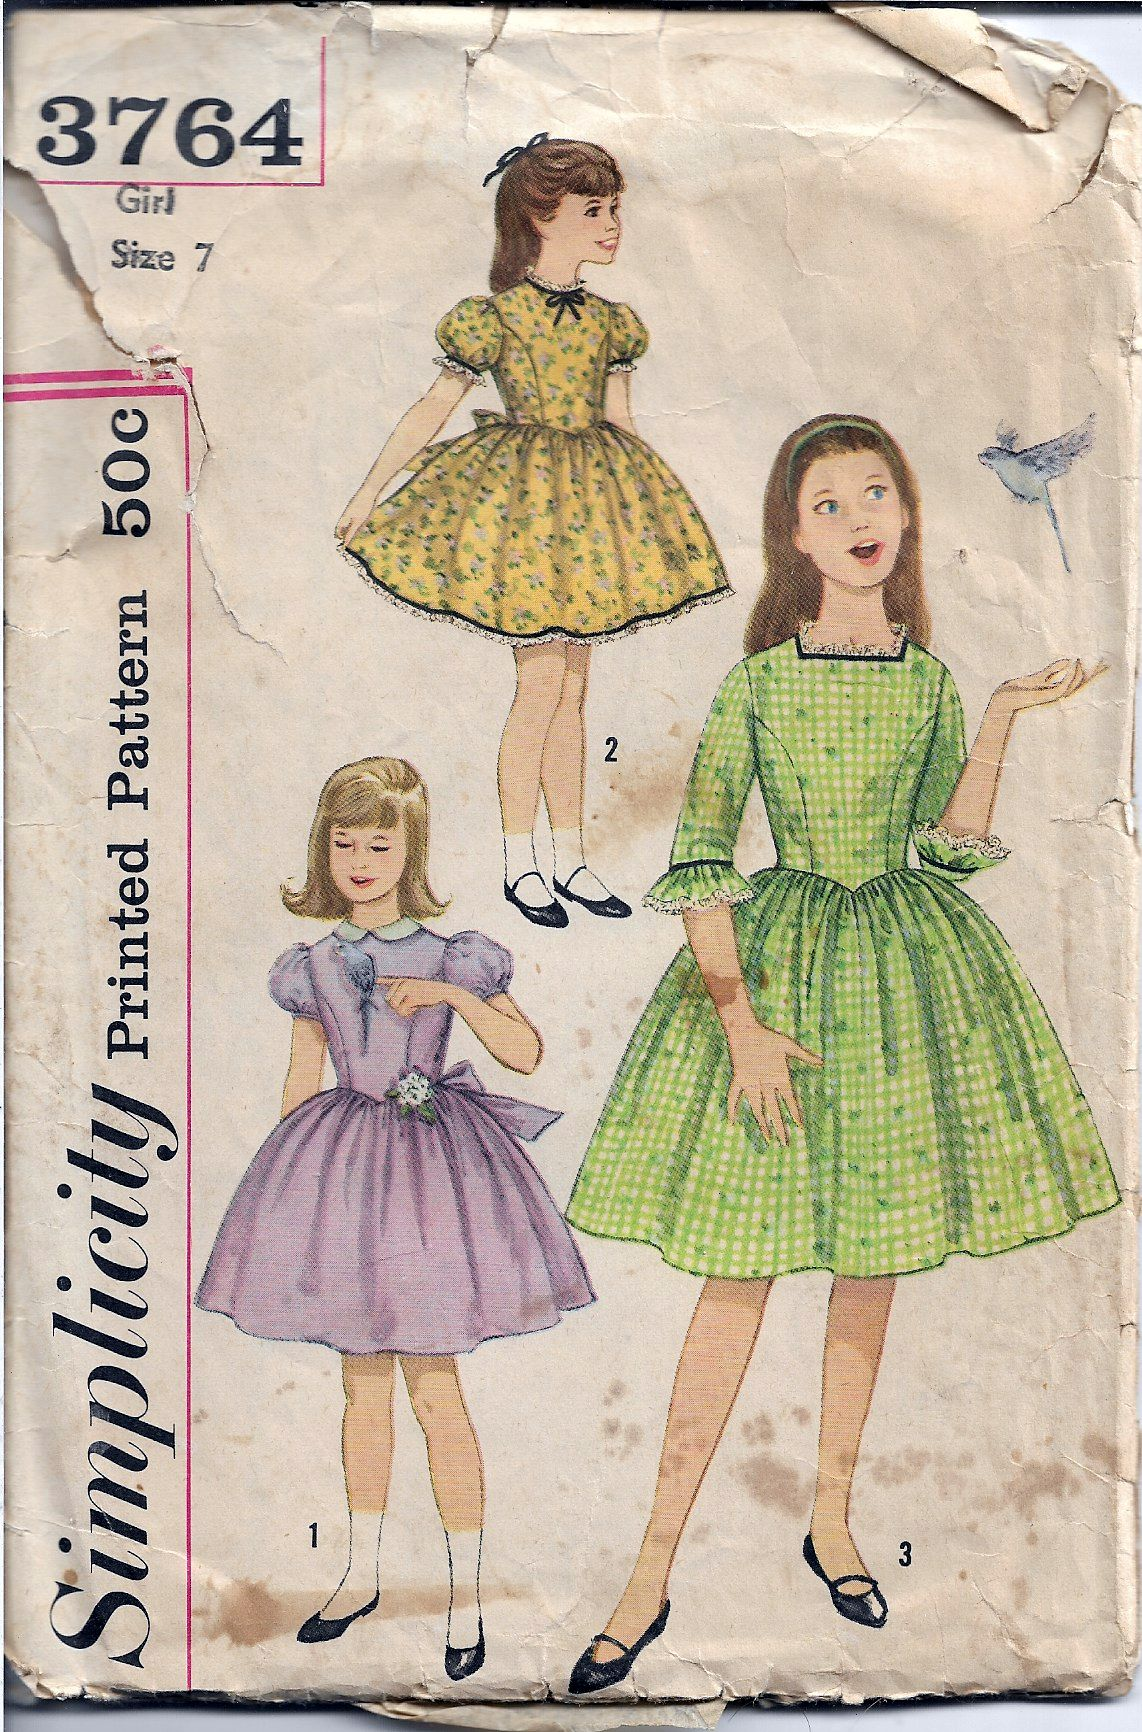 Simplicity 3764 Vintage 1960s Sewing Pattern Girls Party Dress Puff Sleeves - VintageStitching - Vintage Sewing Patterns